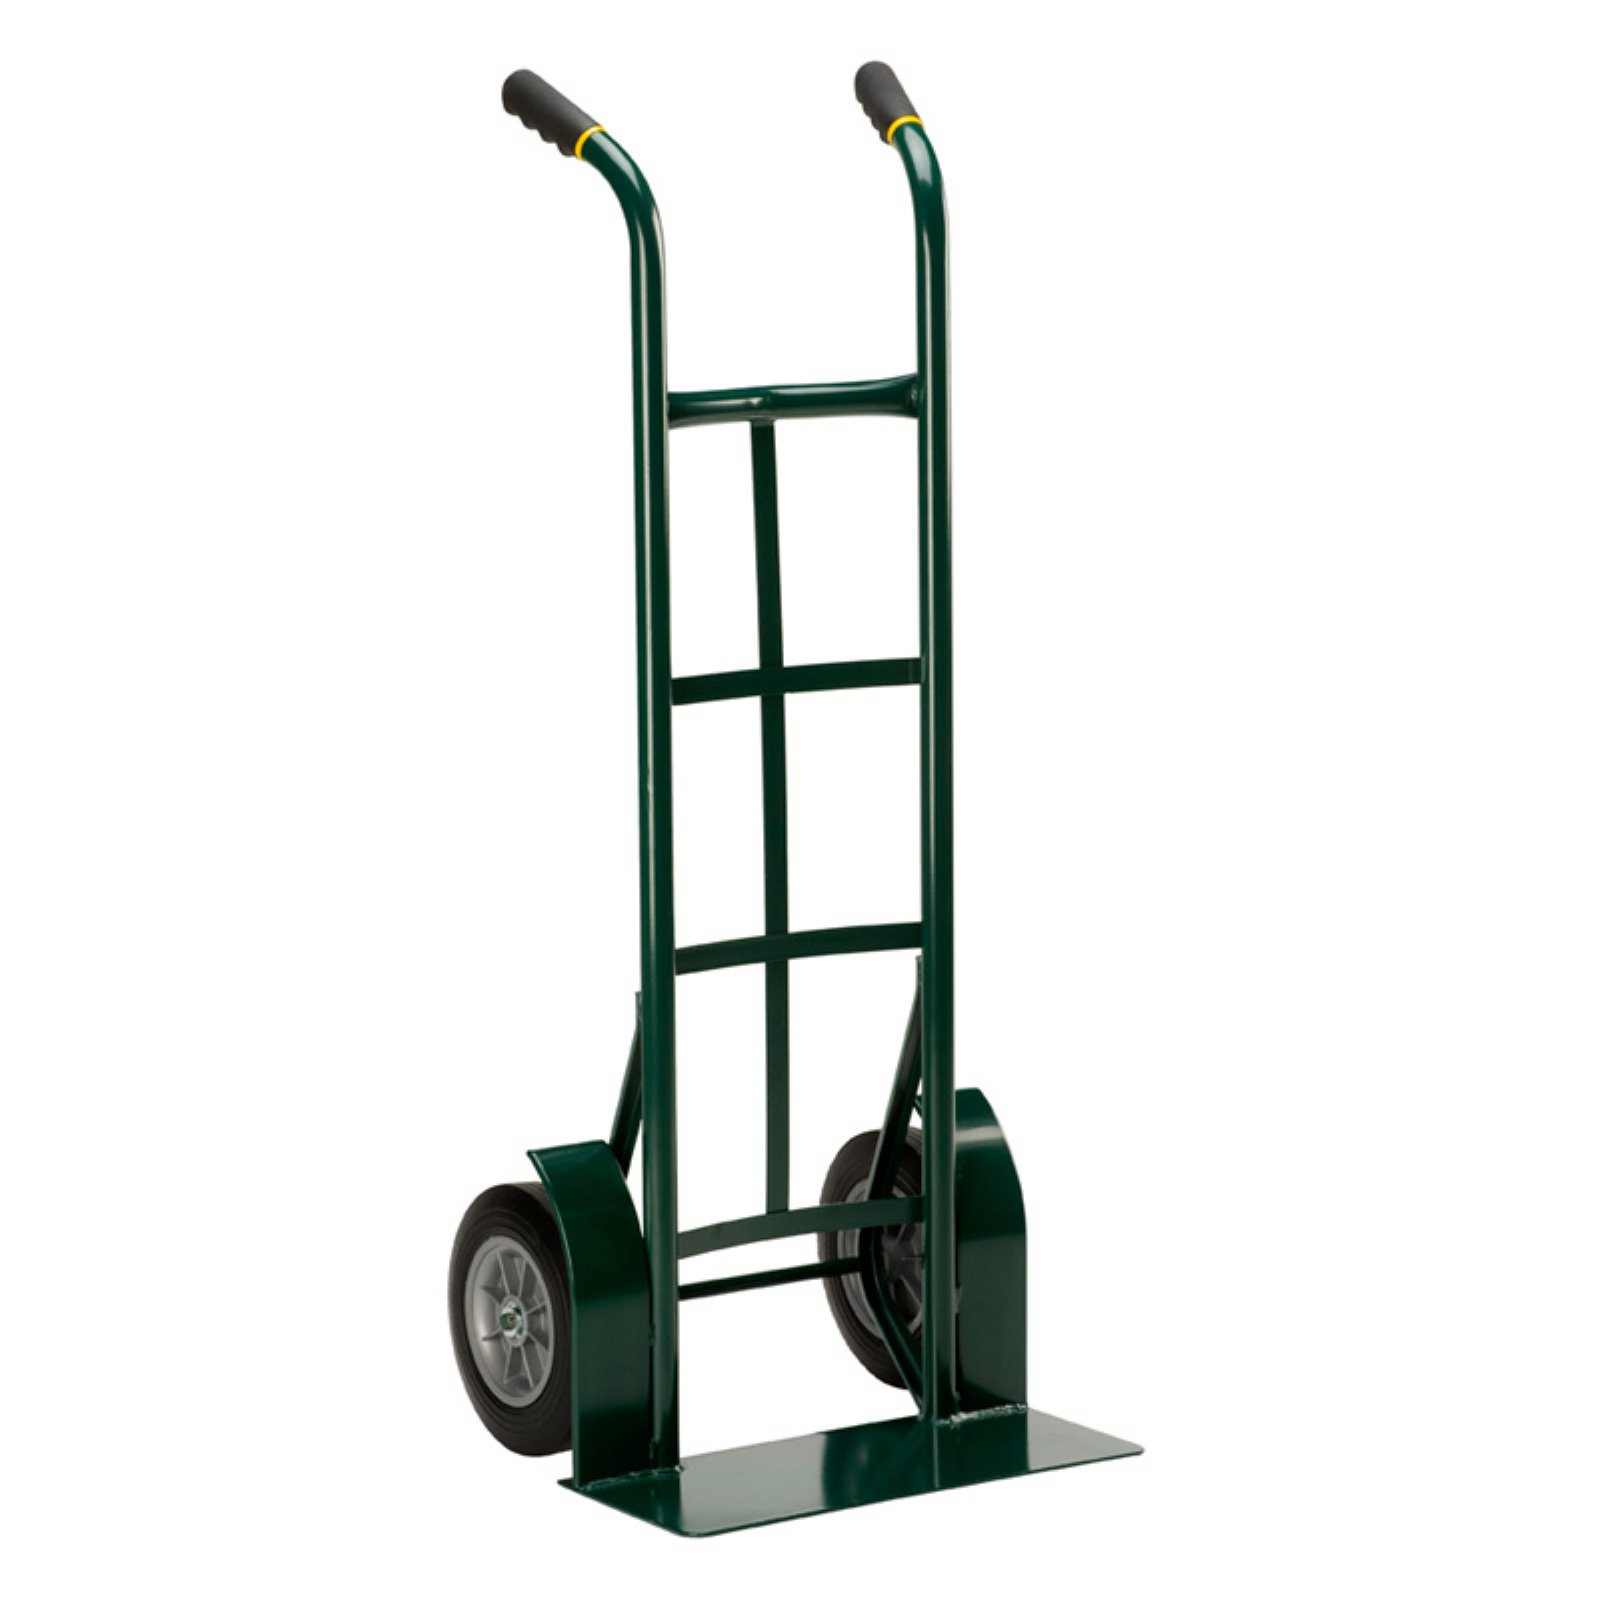 Harper Super Steel 1000 lb Capacity Flat-Free Heavy Duty Dual Handle Hand Truck by Harper Trucks Inc